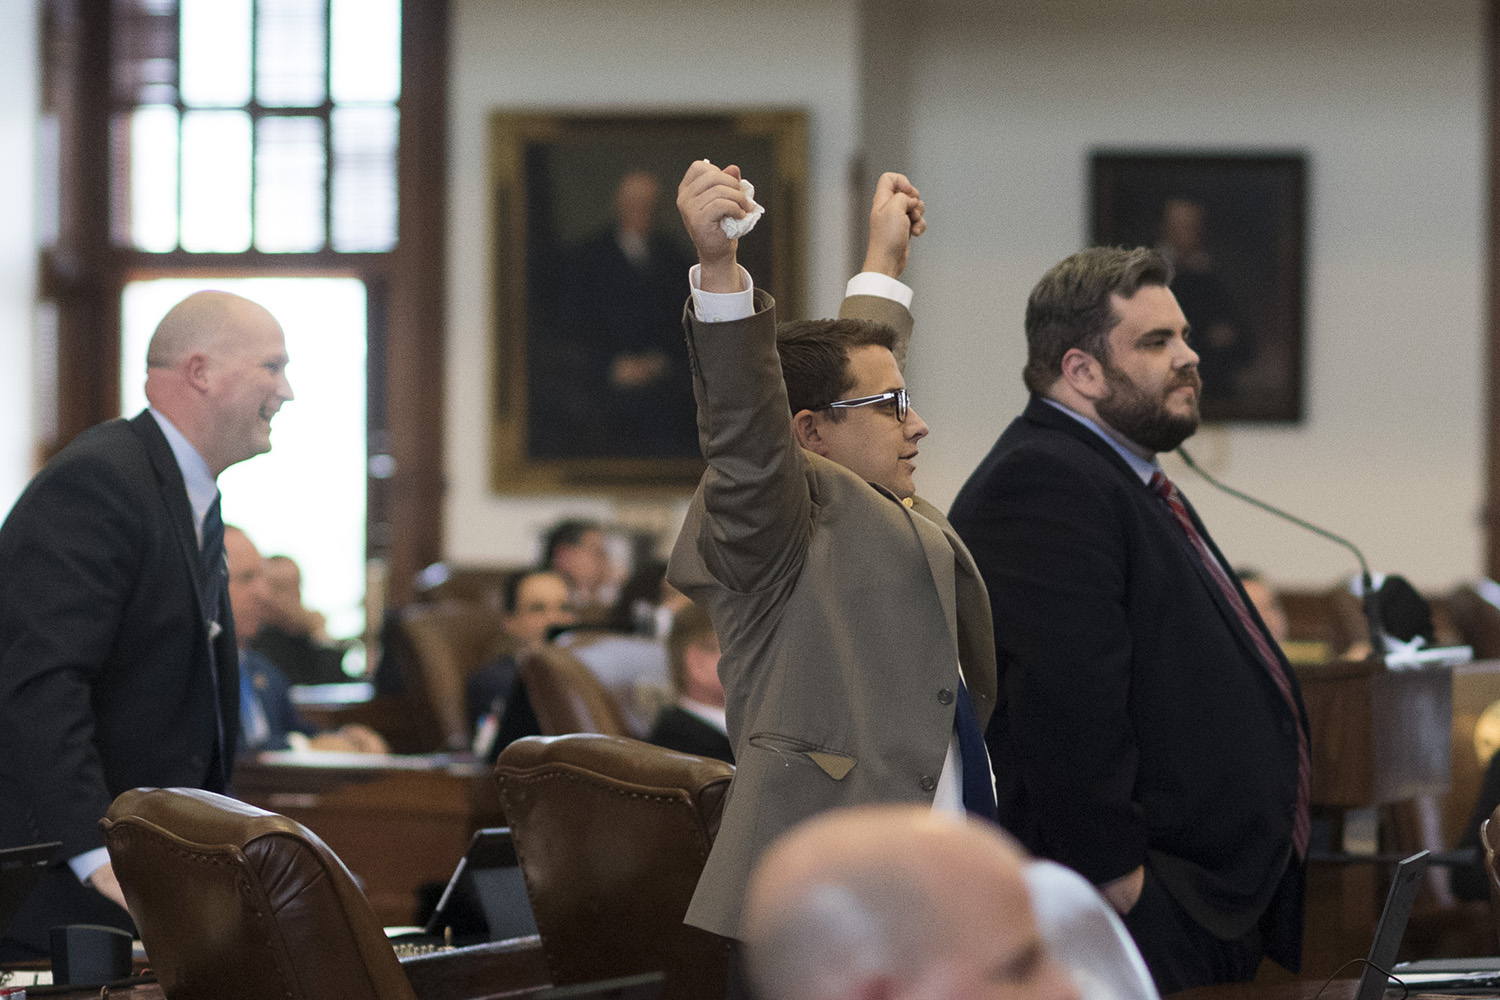 4:40 p.m.  State Rep. Briscoe Cain, R-Deer Park, one of the members of the Texas Freedom Caucus, raises his arms in celebration.